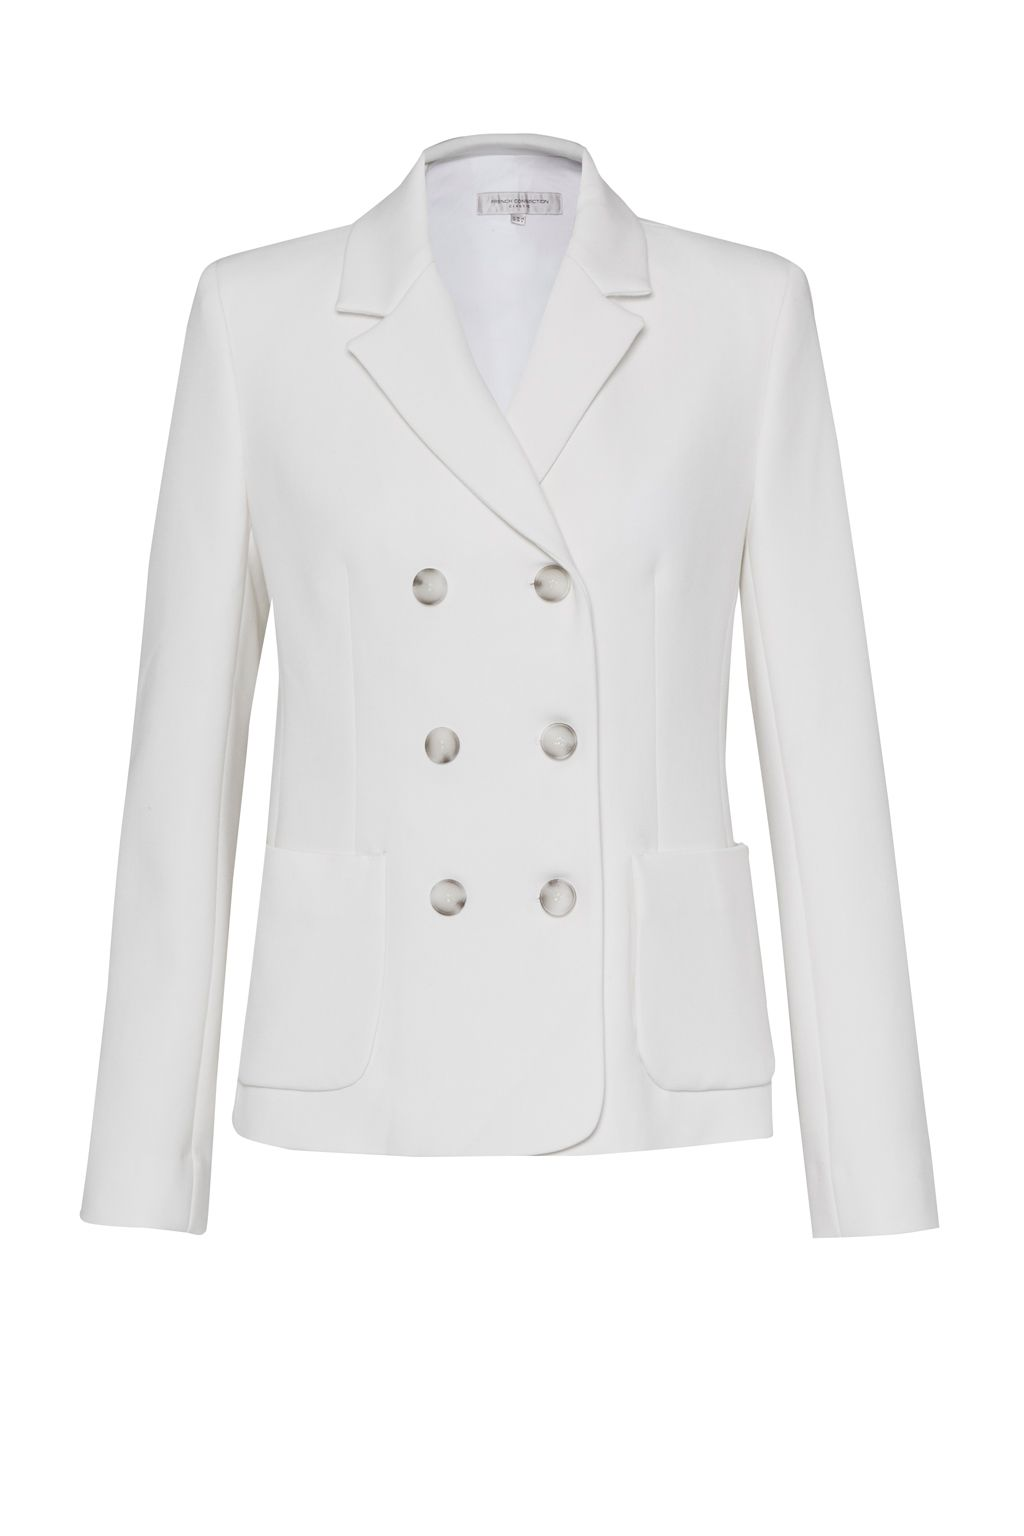 French Connection Sundae Suiting Double Breast Blazer, White